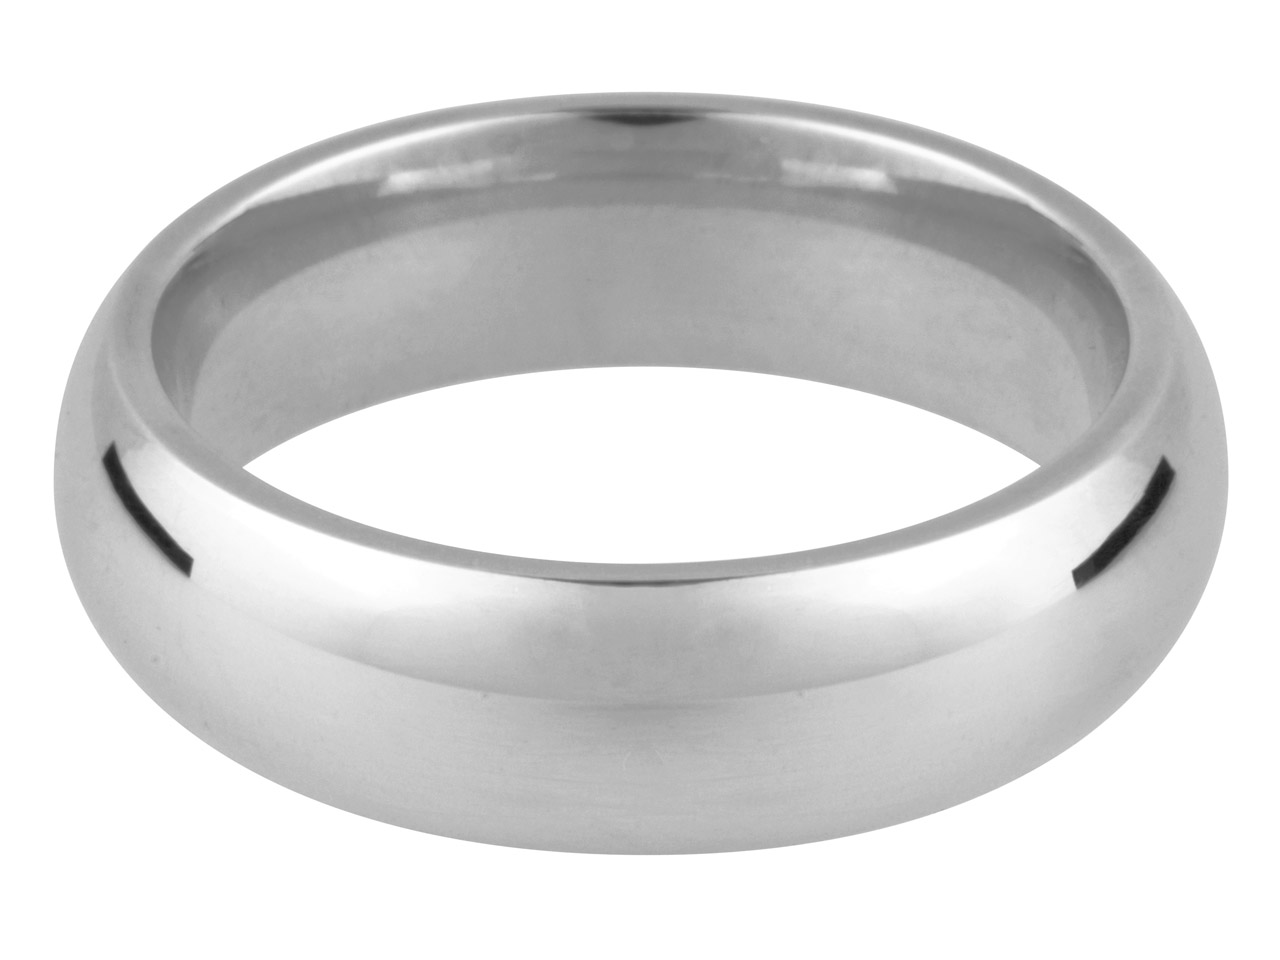 Silver Court Wedding Ring 8.0mm R  10.5gms Heavy Weight Hallmarked    Wall Thickness 2.49mm